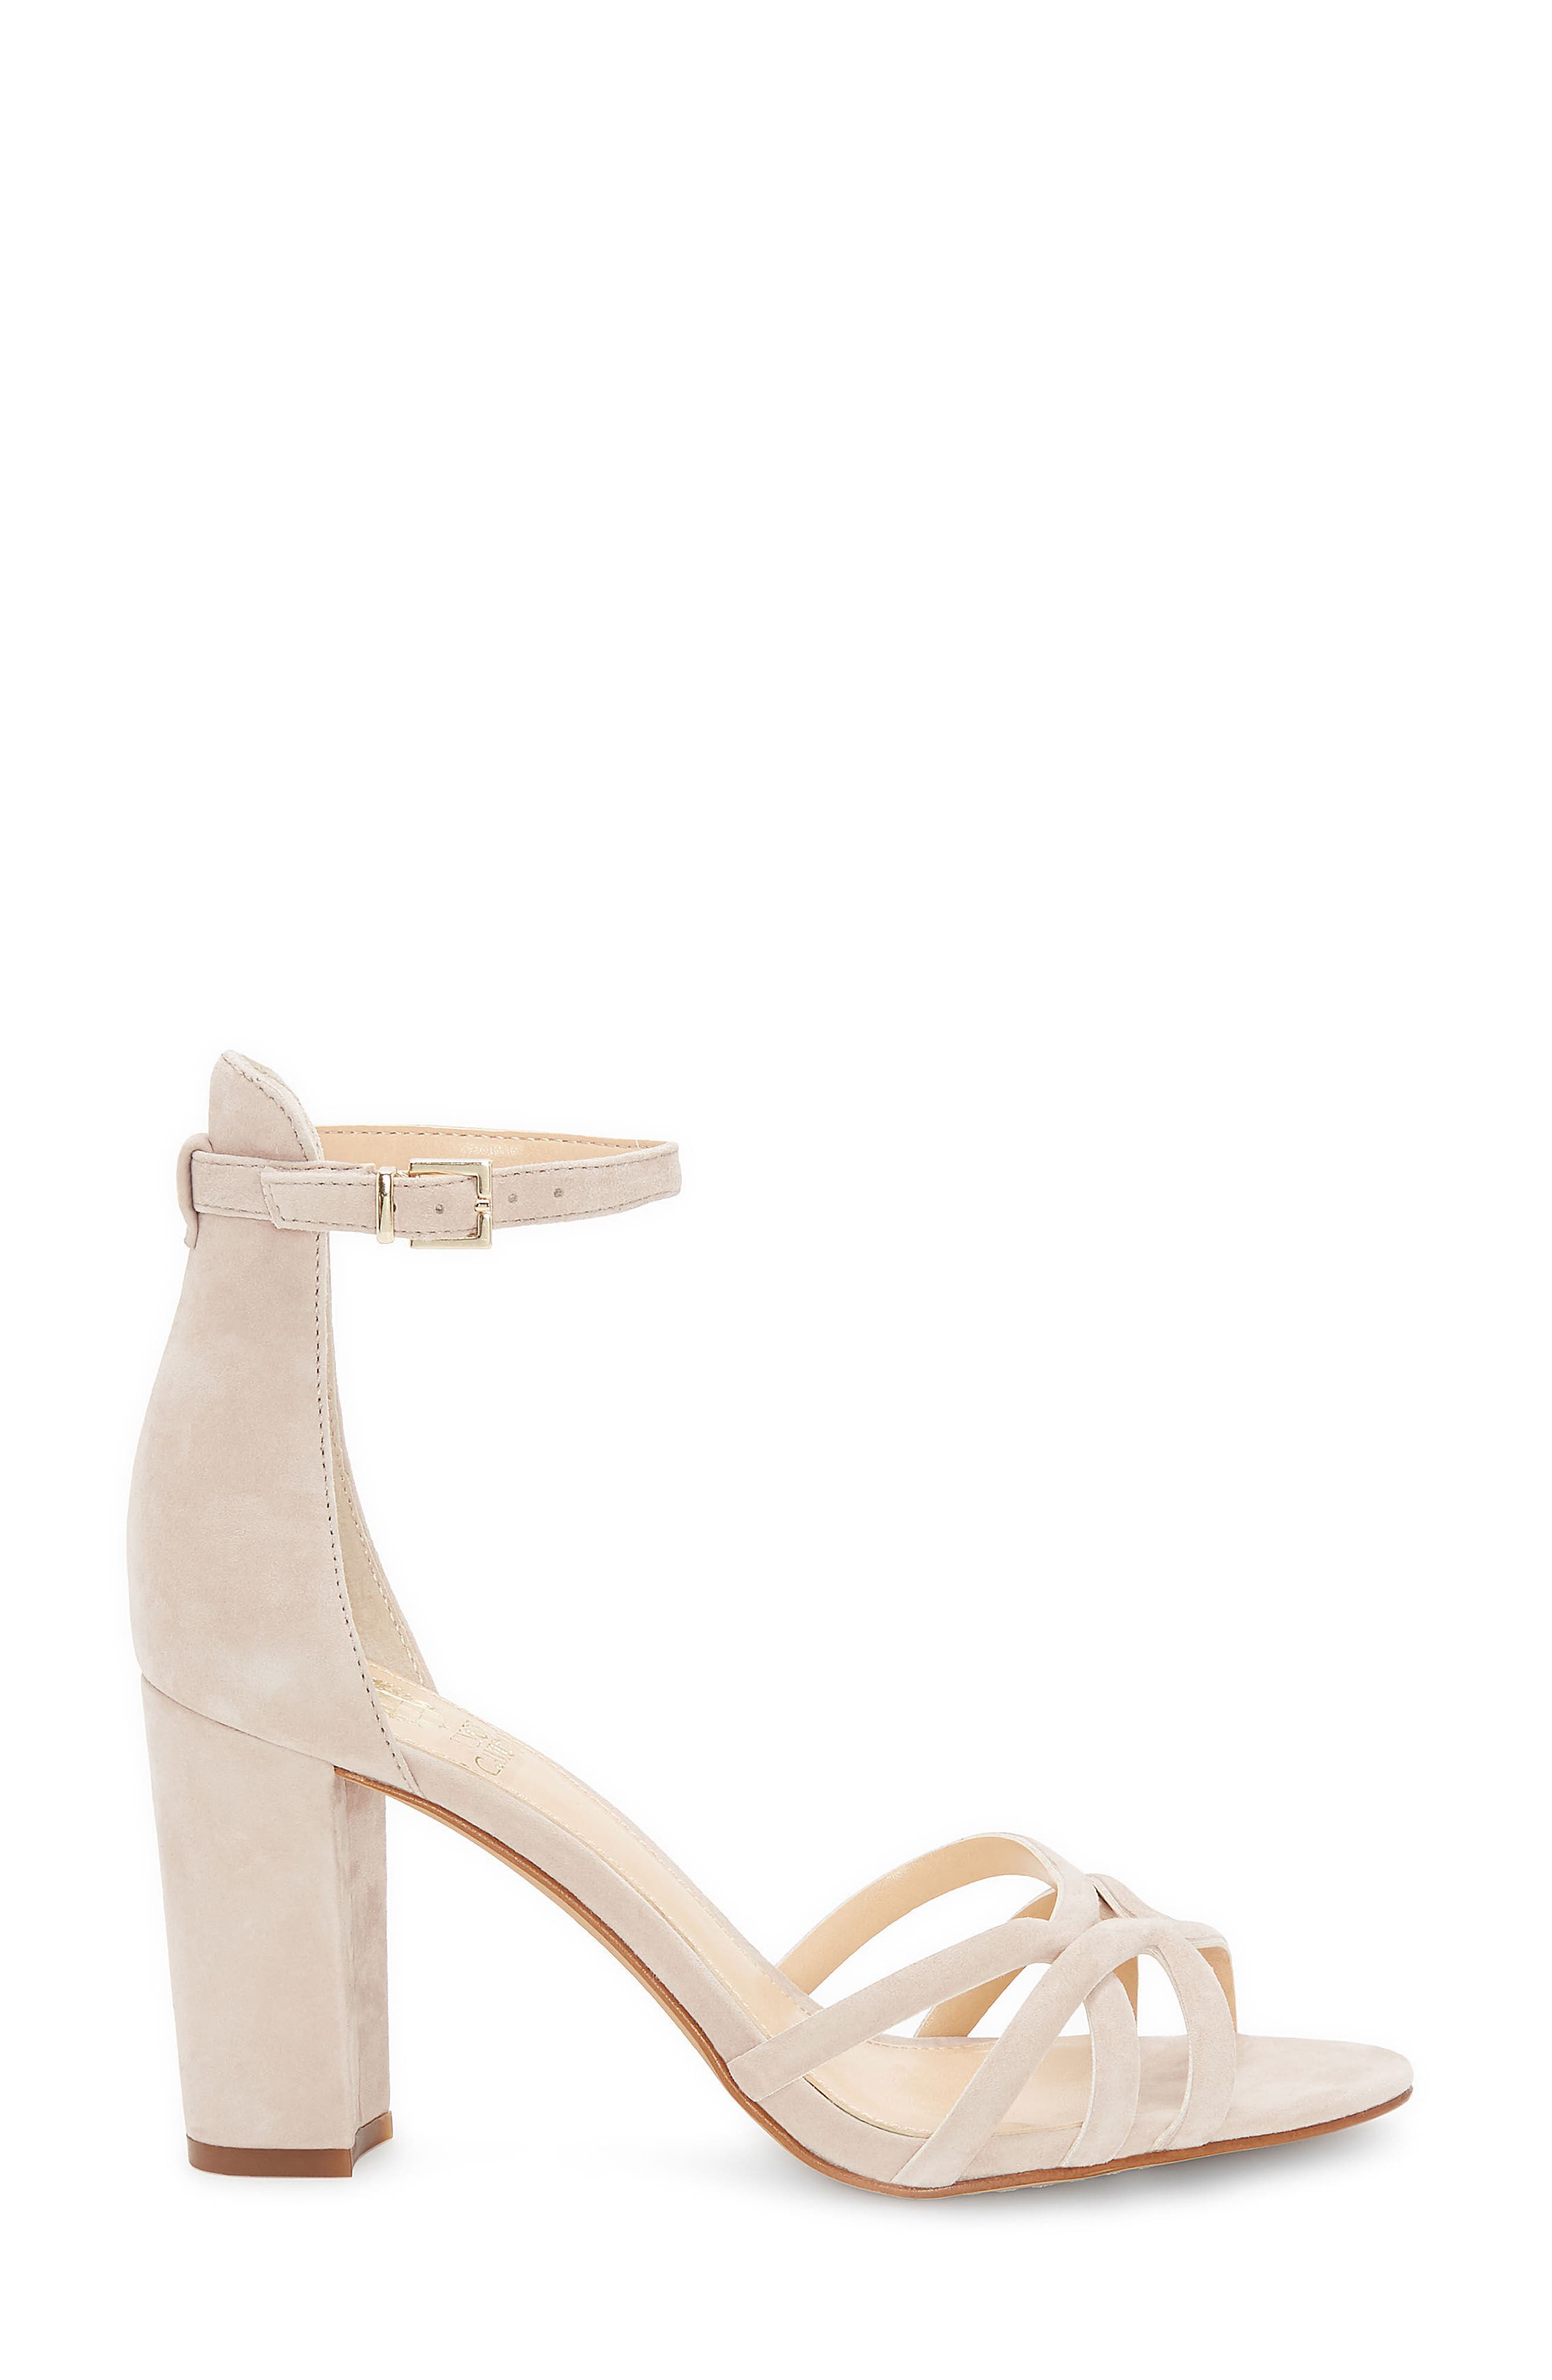 Catelia Ankle Strap Sandal,                             Alternate thumbnail 3, color,                             Taupe Suede